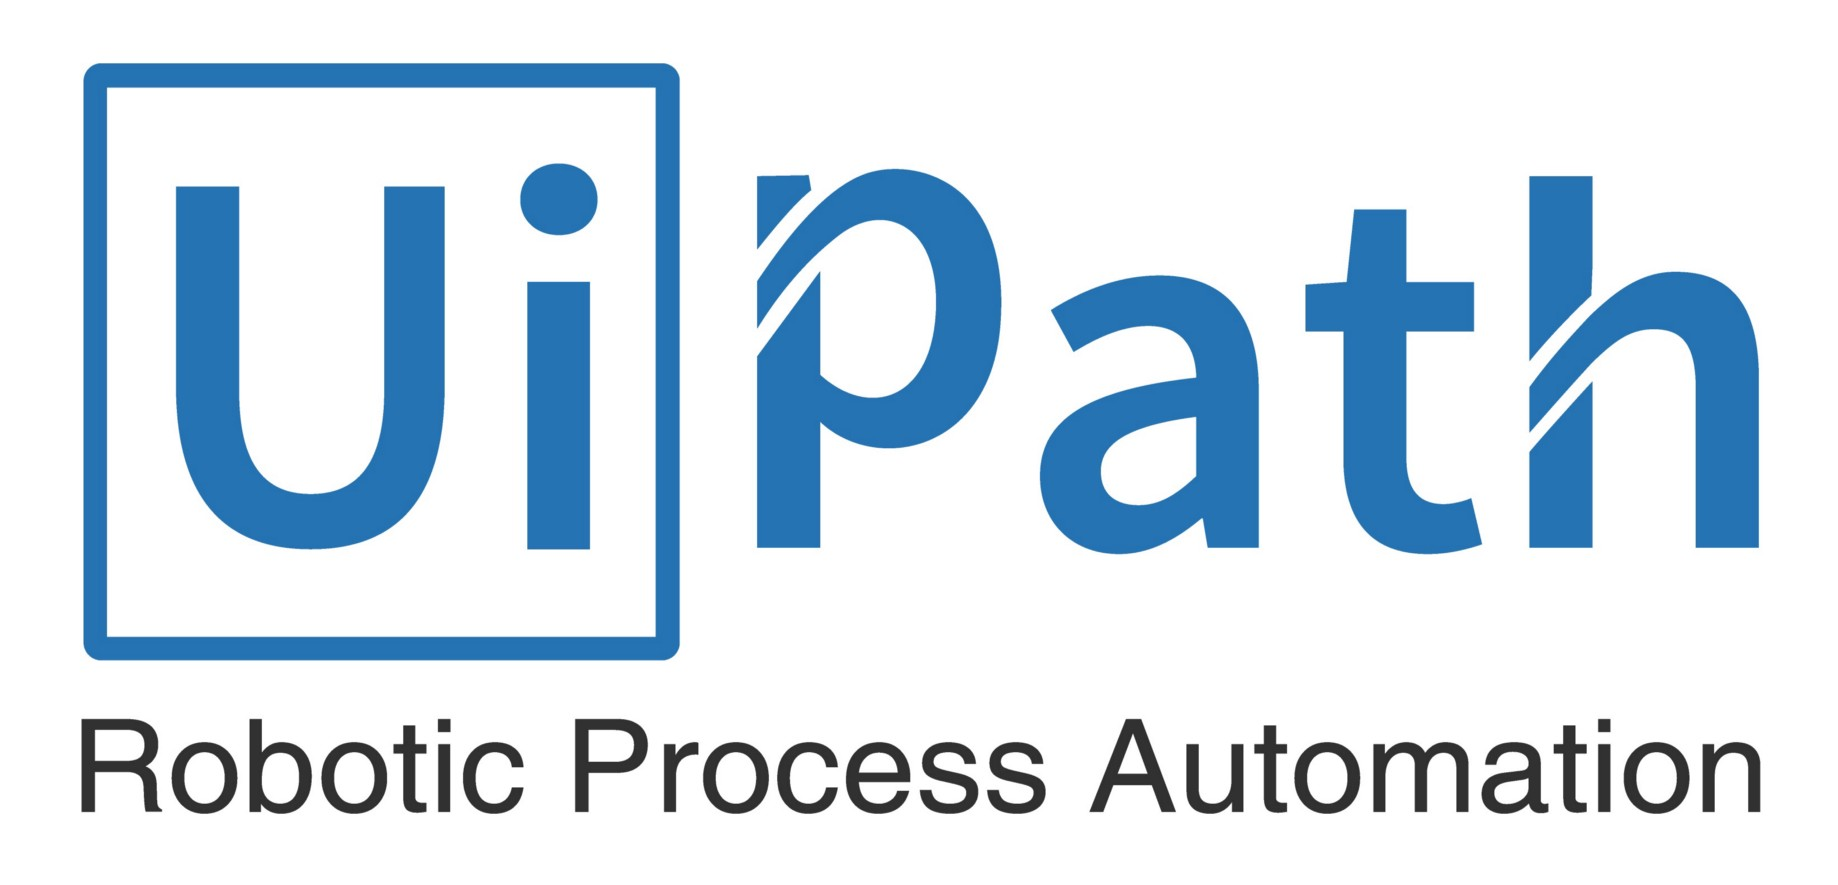 Robotic Process Automation (RPA) with UiPATH - Sriram - Medium